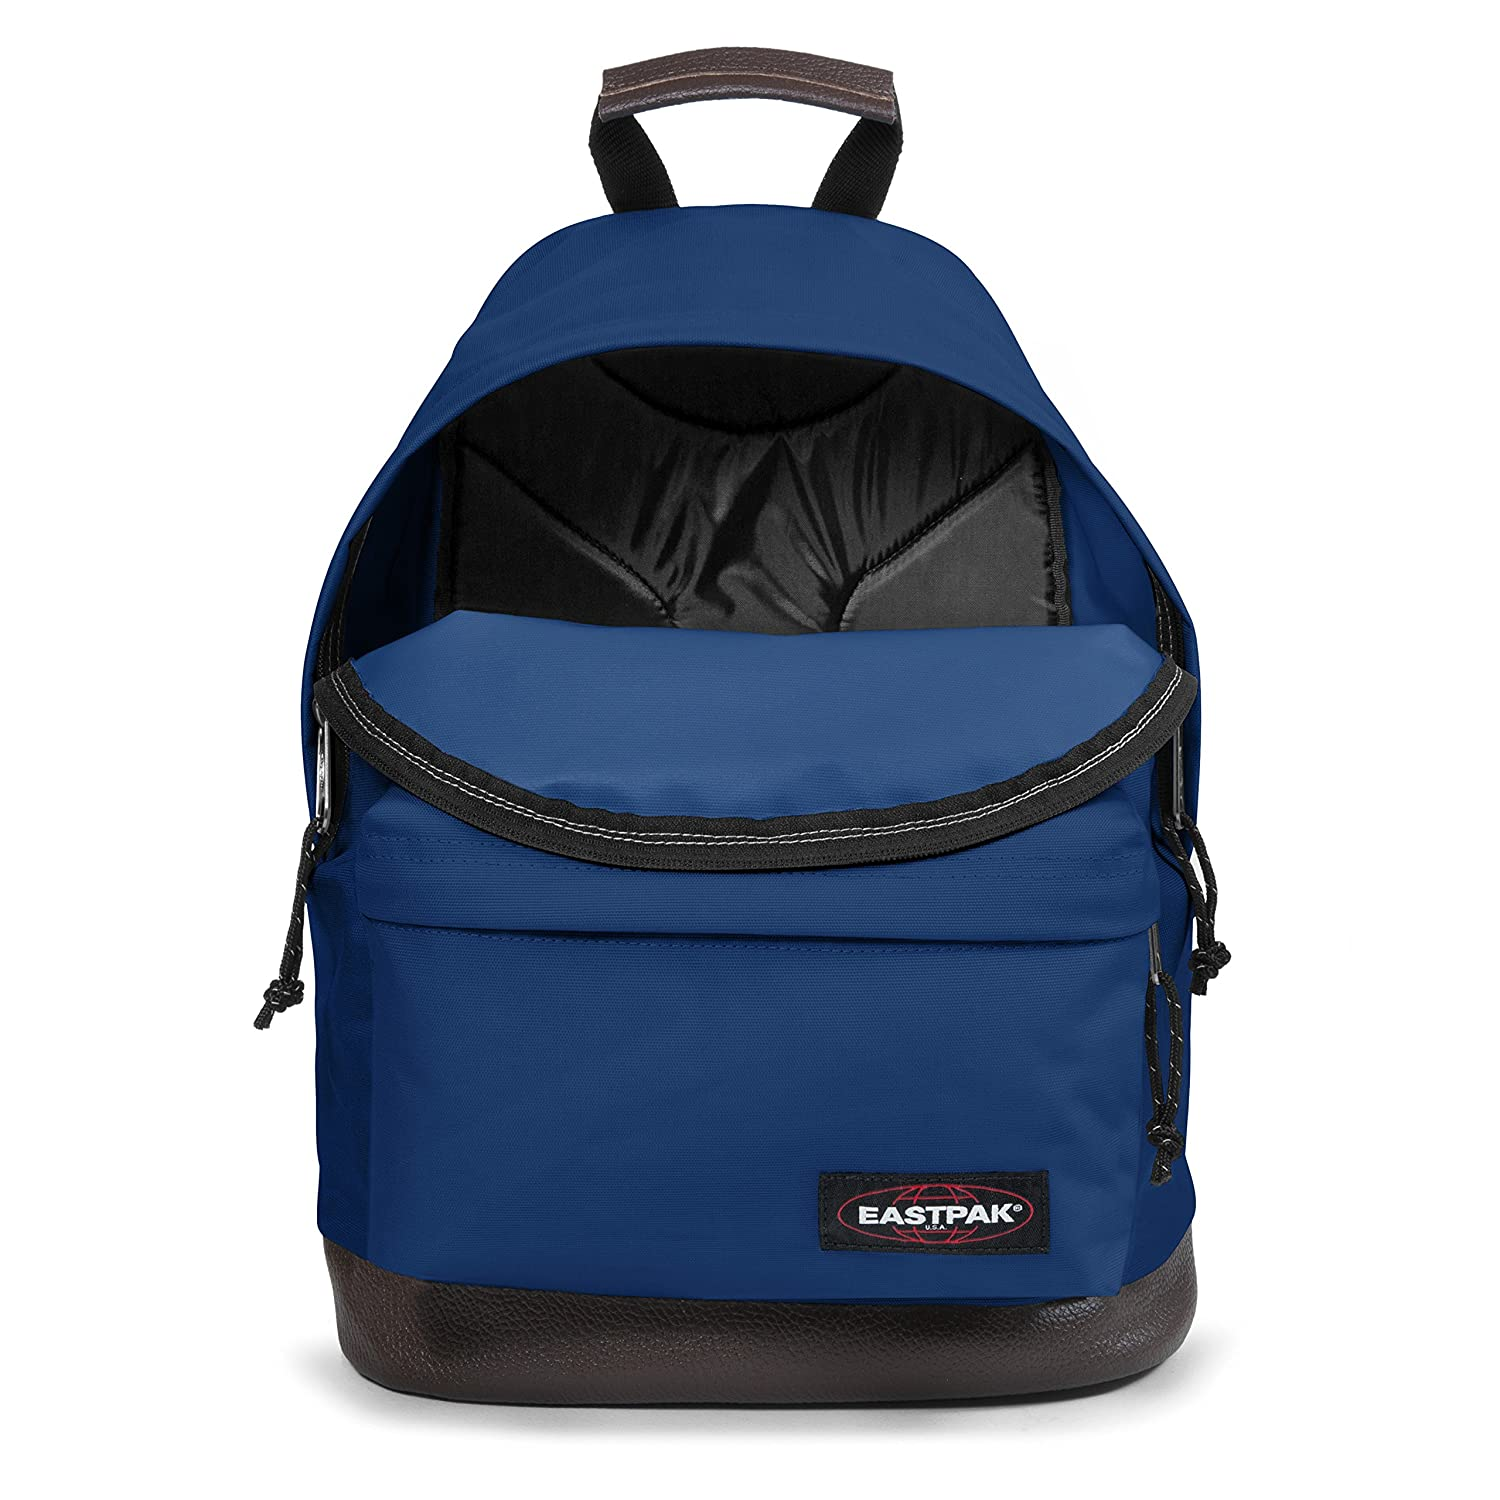 Eastpak Wyoming Mochila, 24 litros, Azul (Bonded Blue): Amazon.es: Equipaje